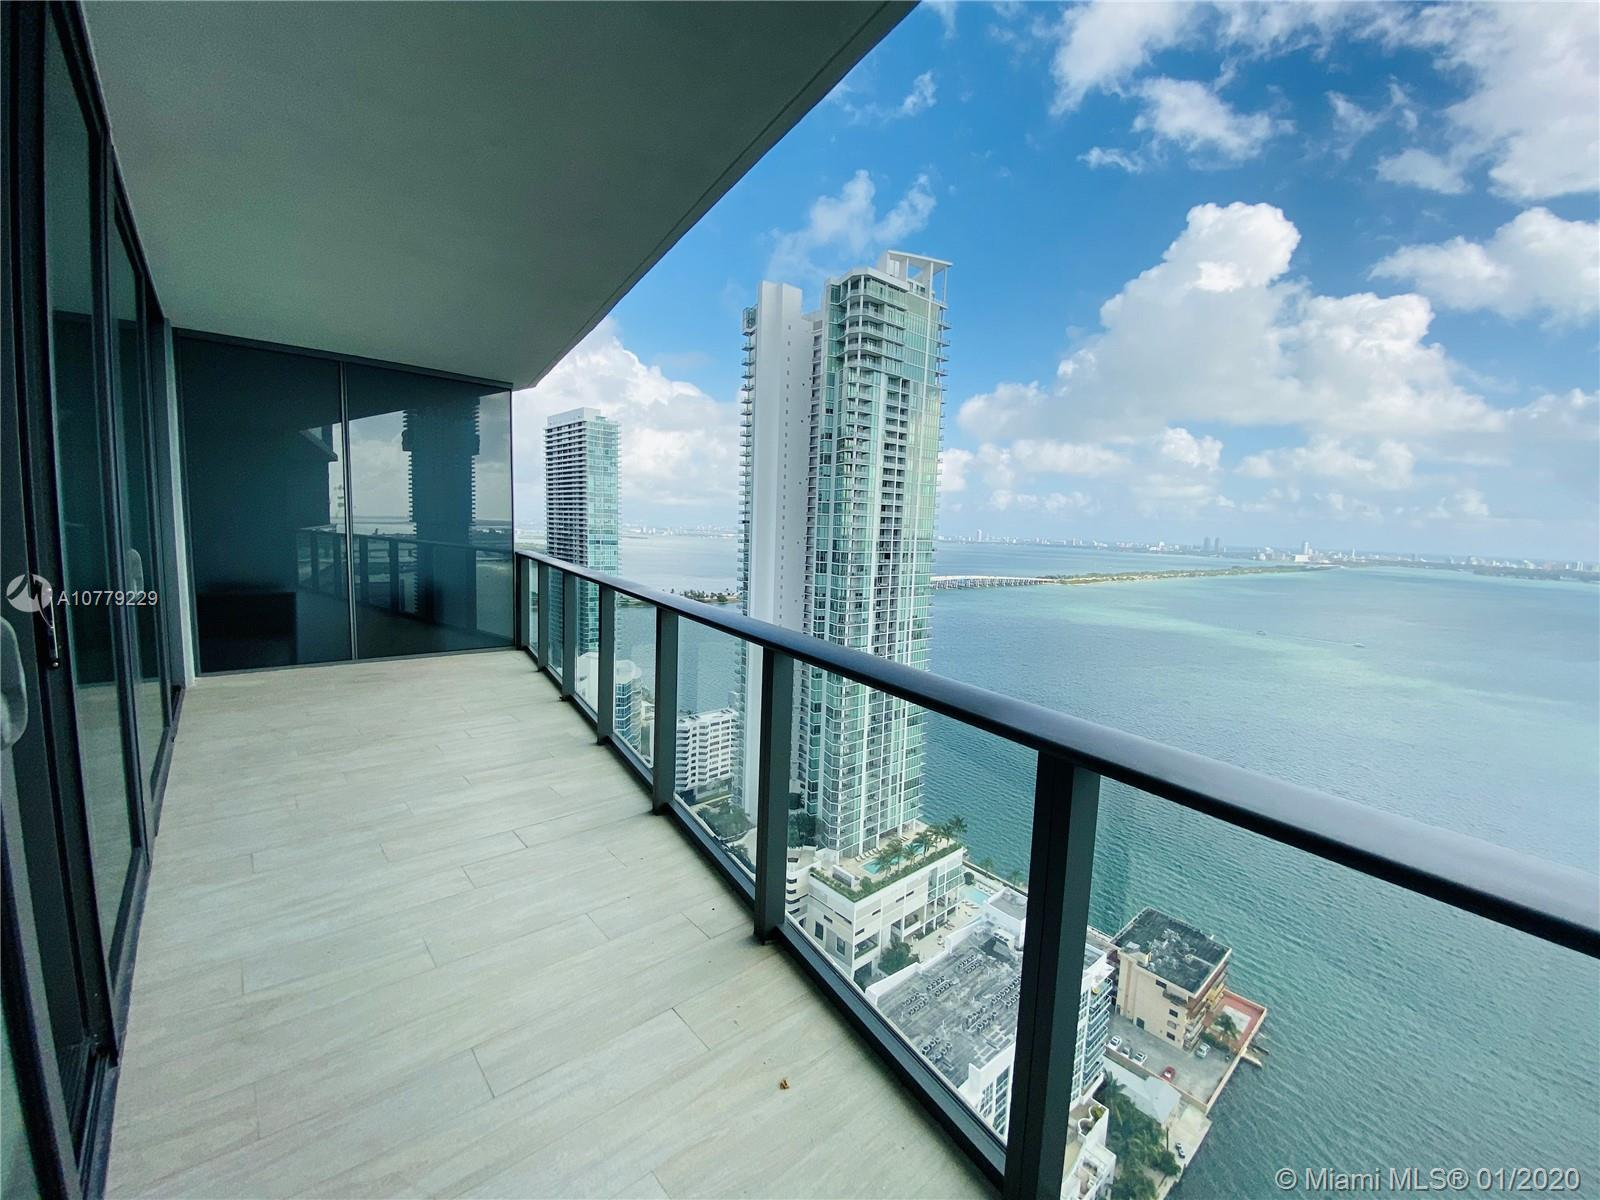 DESIGNER INSPIRED 2 BED AND 2 BATH RESIDENCE AT NEW ICON BAY WITH AMAZING DIRECT BAY VIEW. GREAT ATT